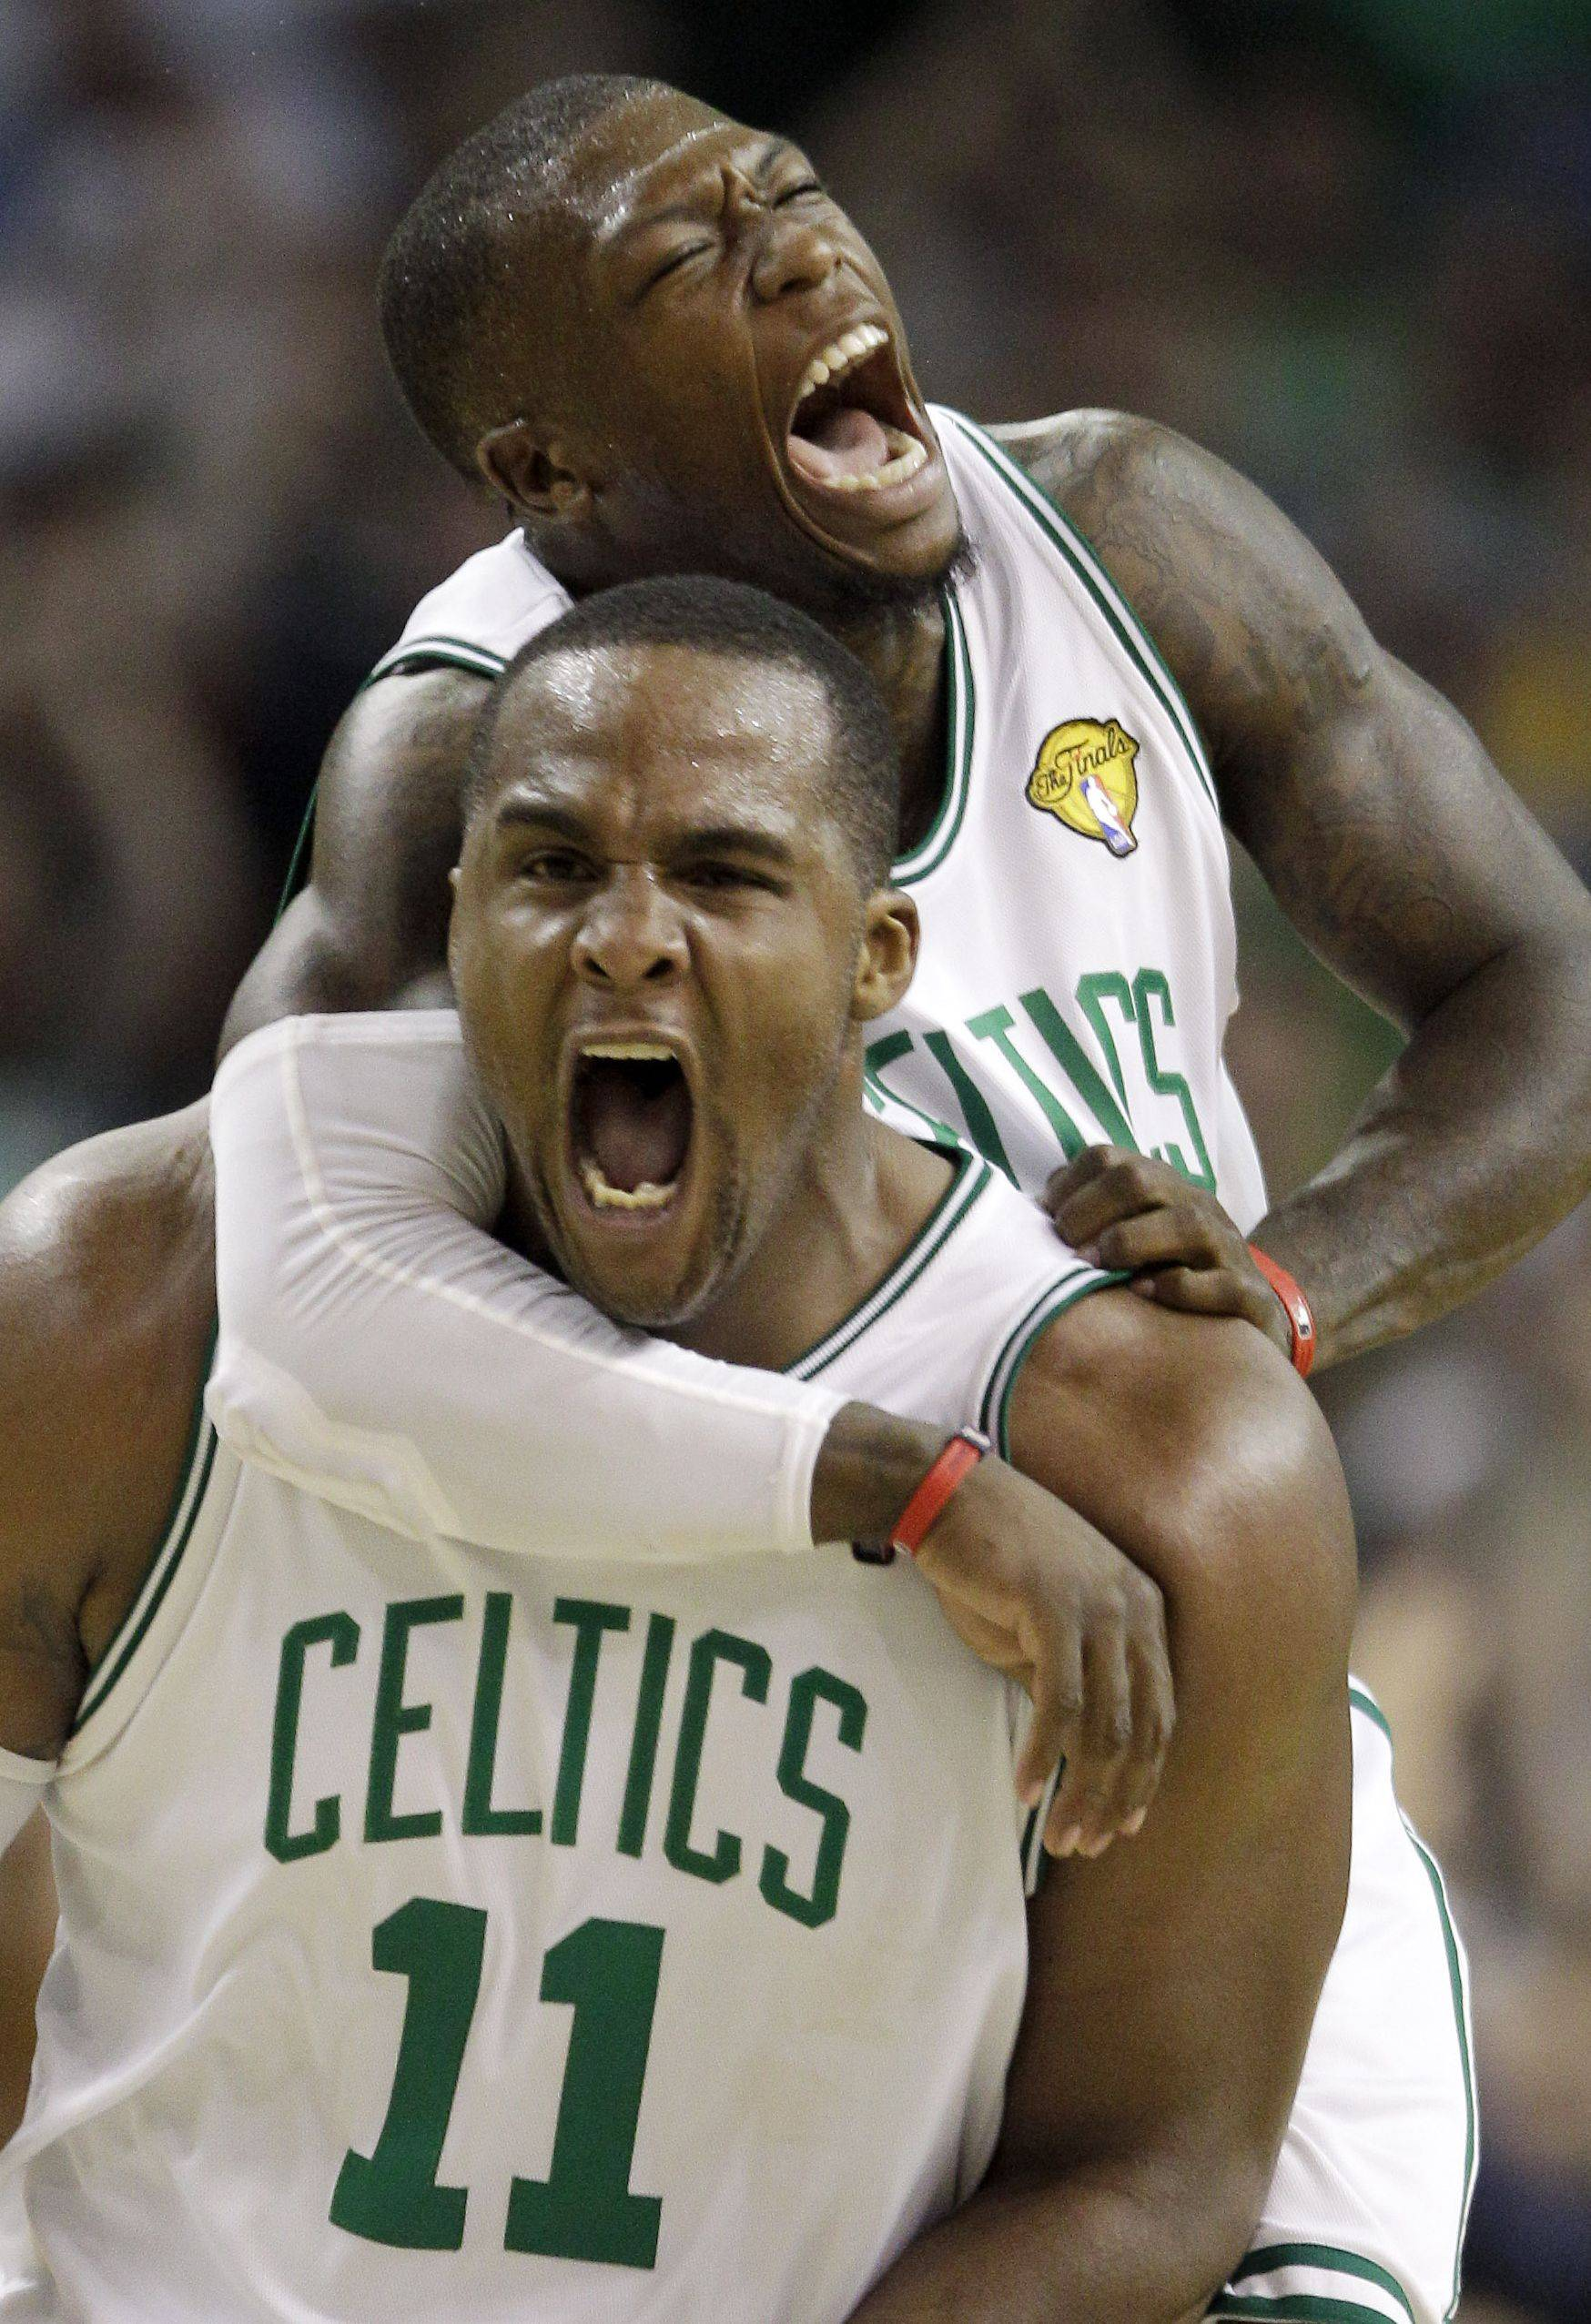 New Bulls point guard Nate Robinson, rear, celebrates with Glen Davis during the NBA Finals in 2010.